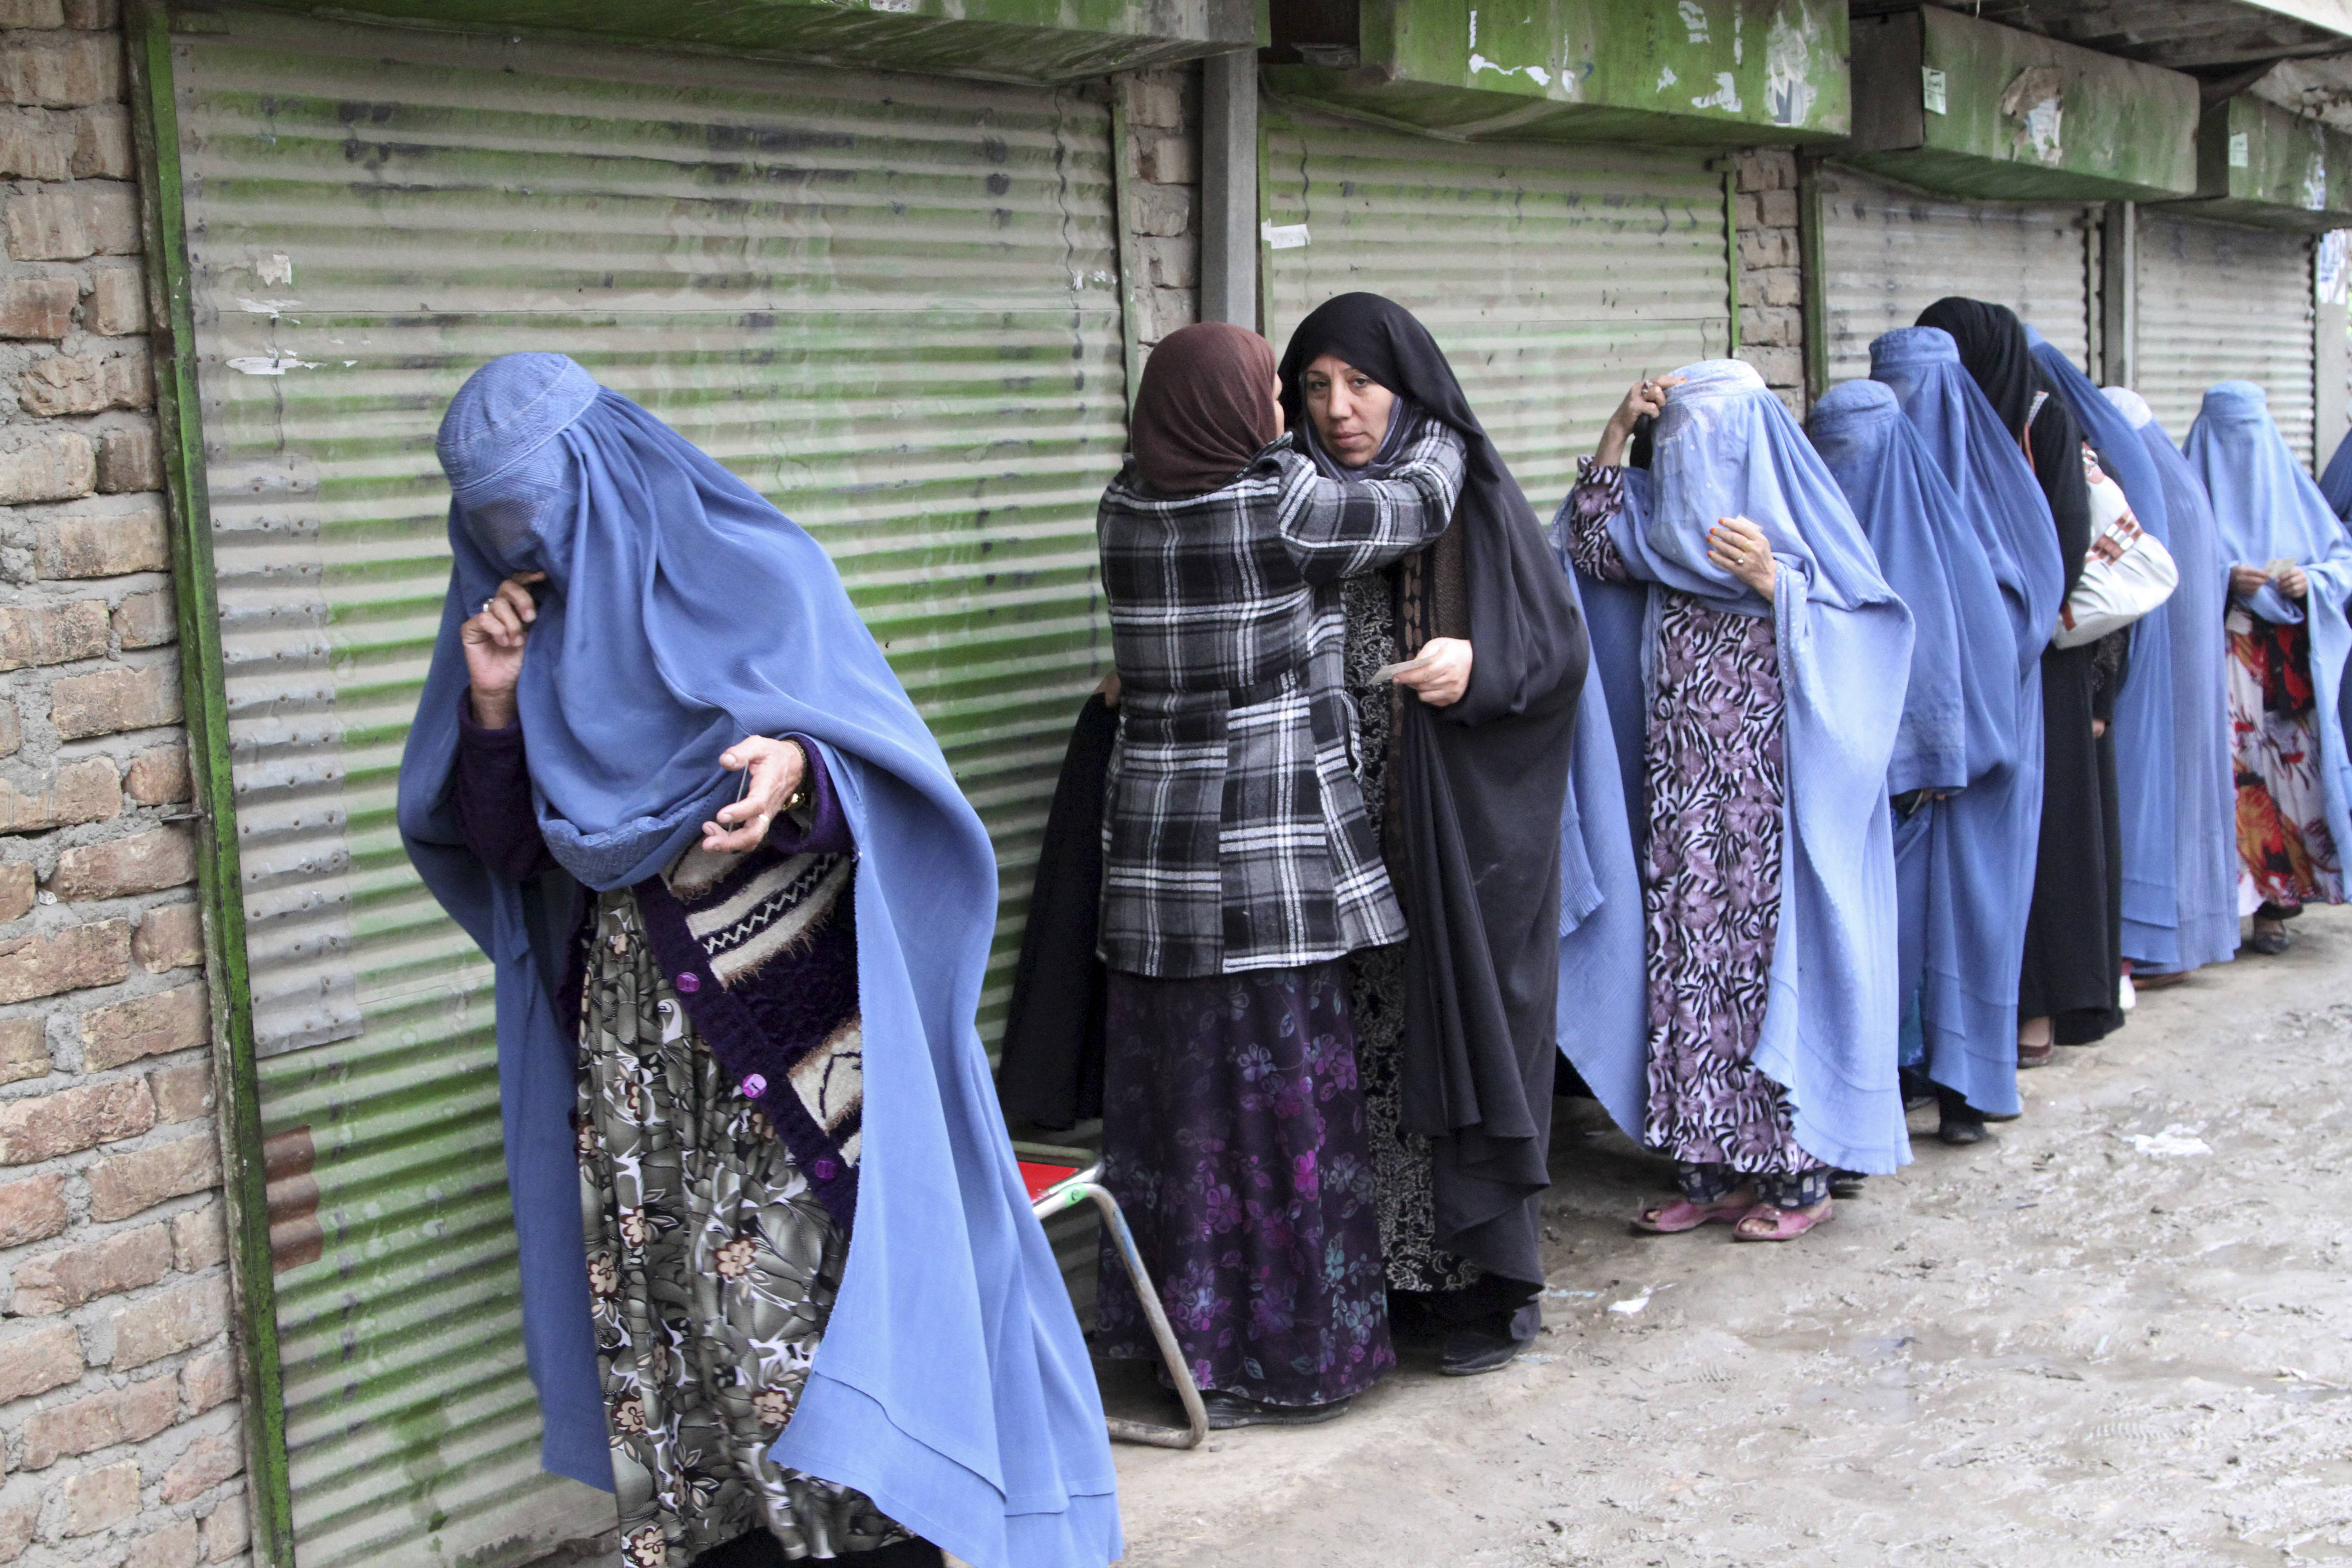 An Afghan woman searches voters before they enter a polling station to cast their ballots, in Kabul, Afghanistan, Saturday.